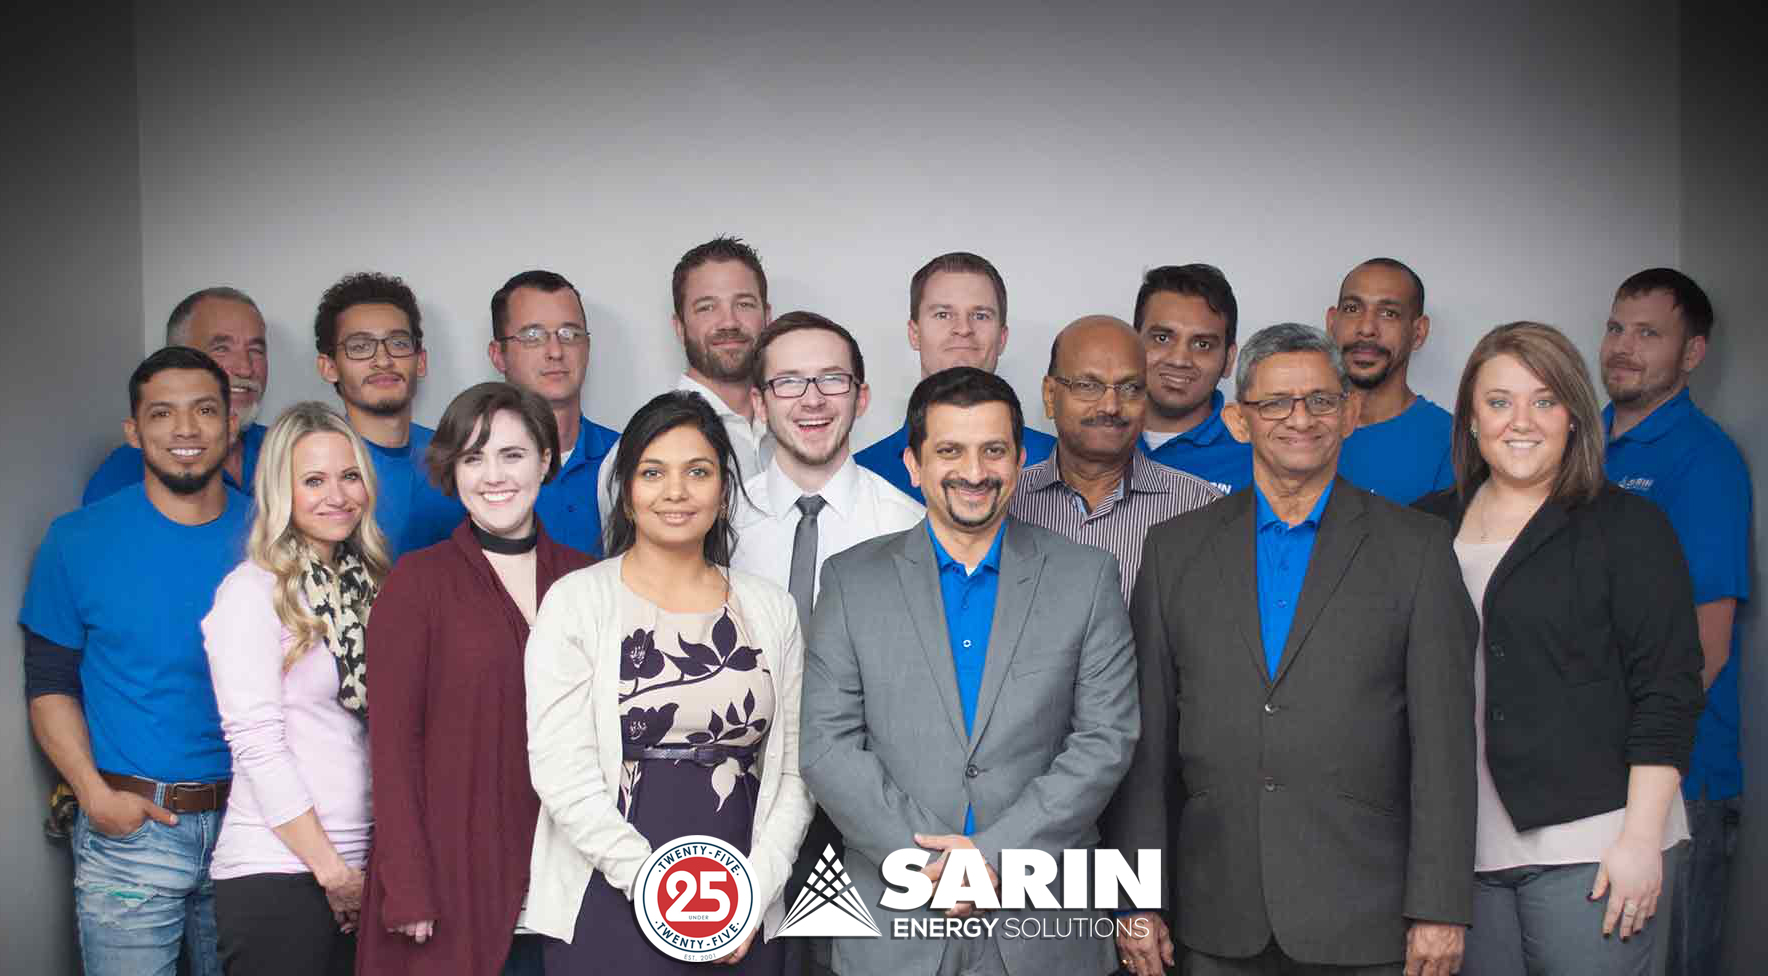 SARIN Energy Solutions | 25 Under 25